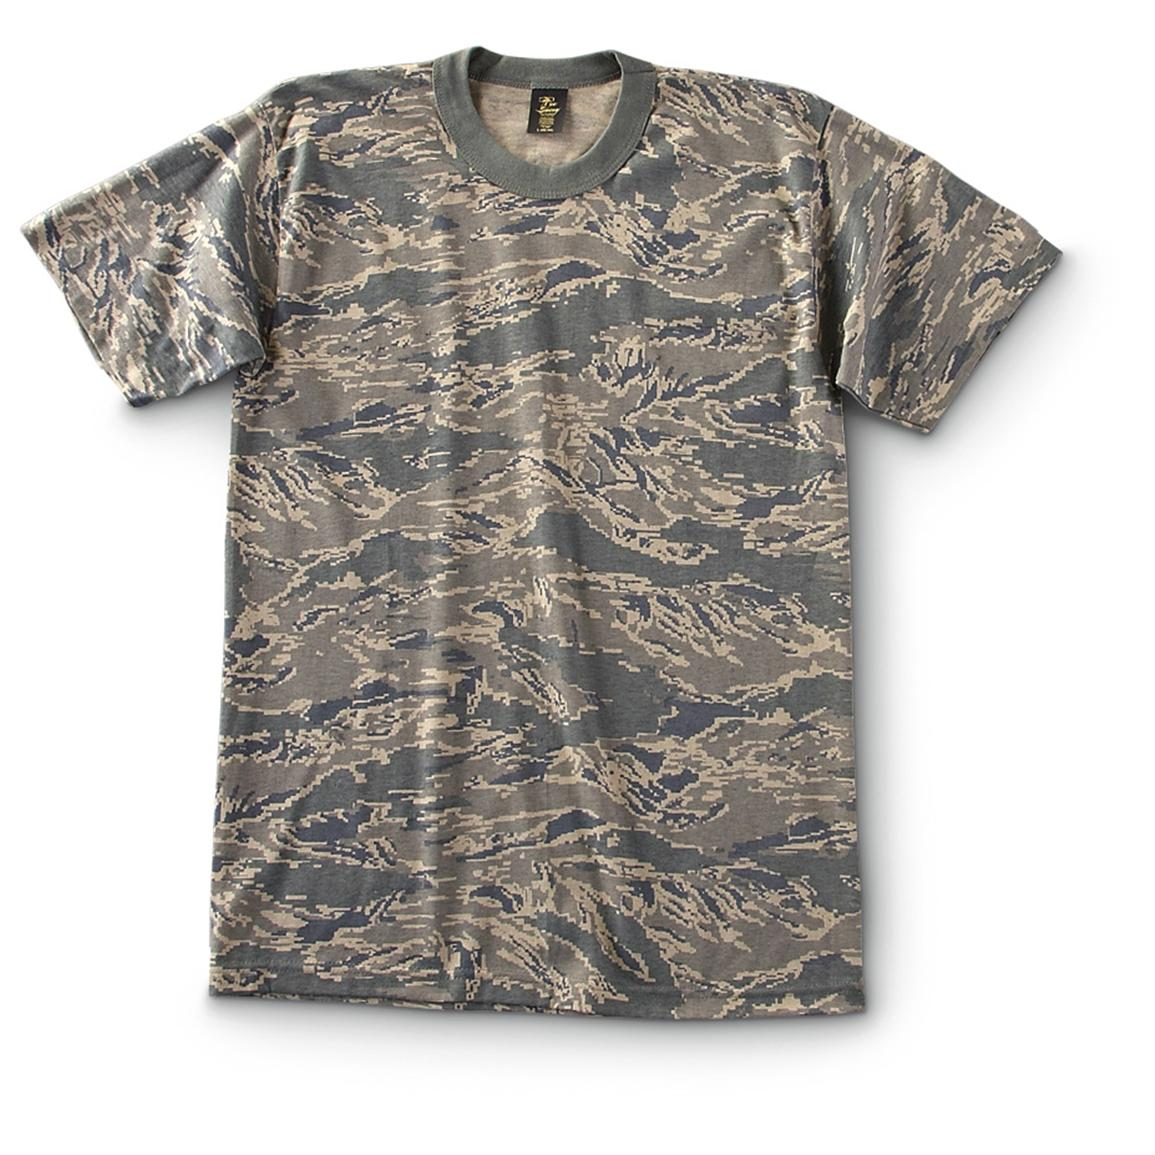 Military-Style Short-Sleeve T-Shirts, 2 Pack, New, ABU Camo